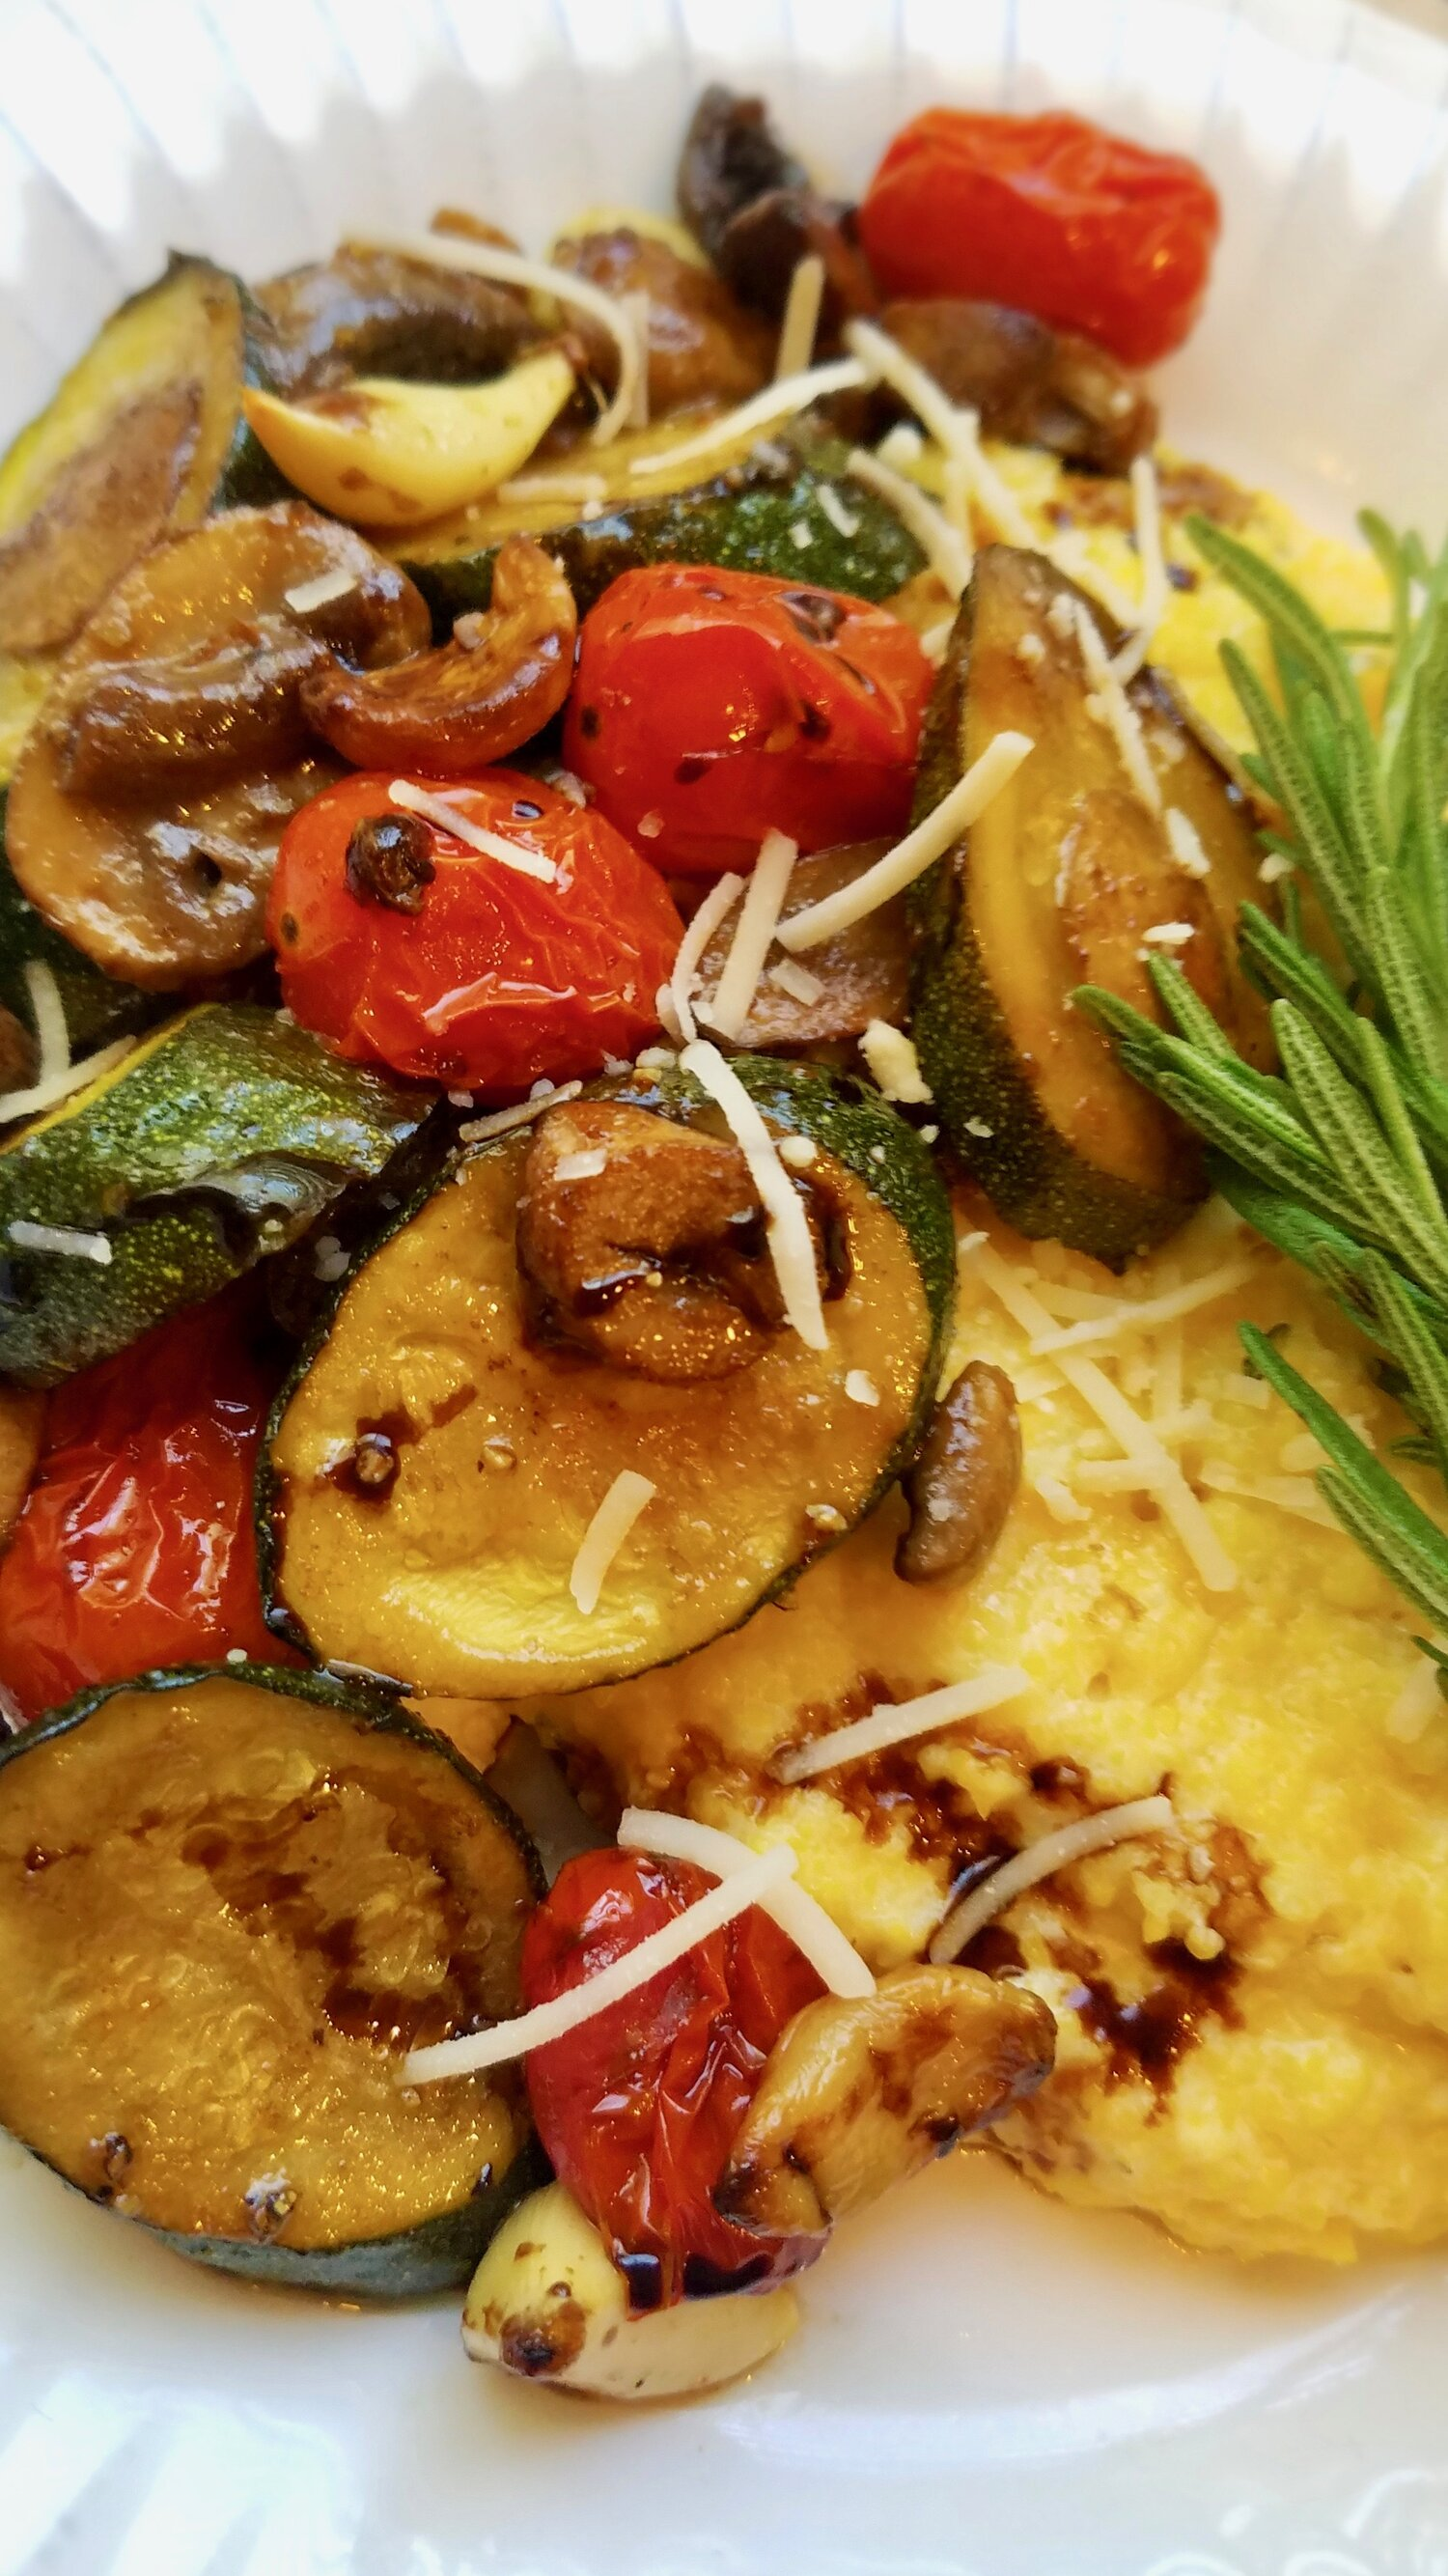 Vegan Creamy Polenta with Roasted Vegetables.jpeg